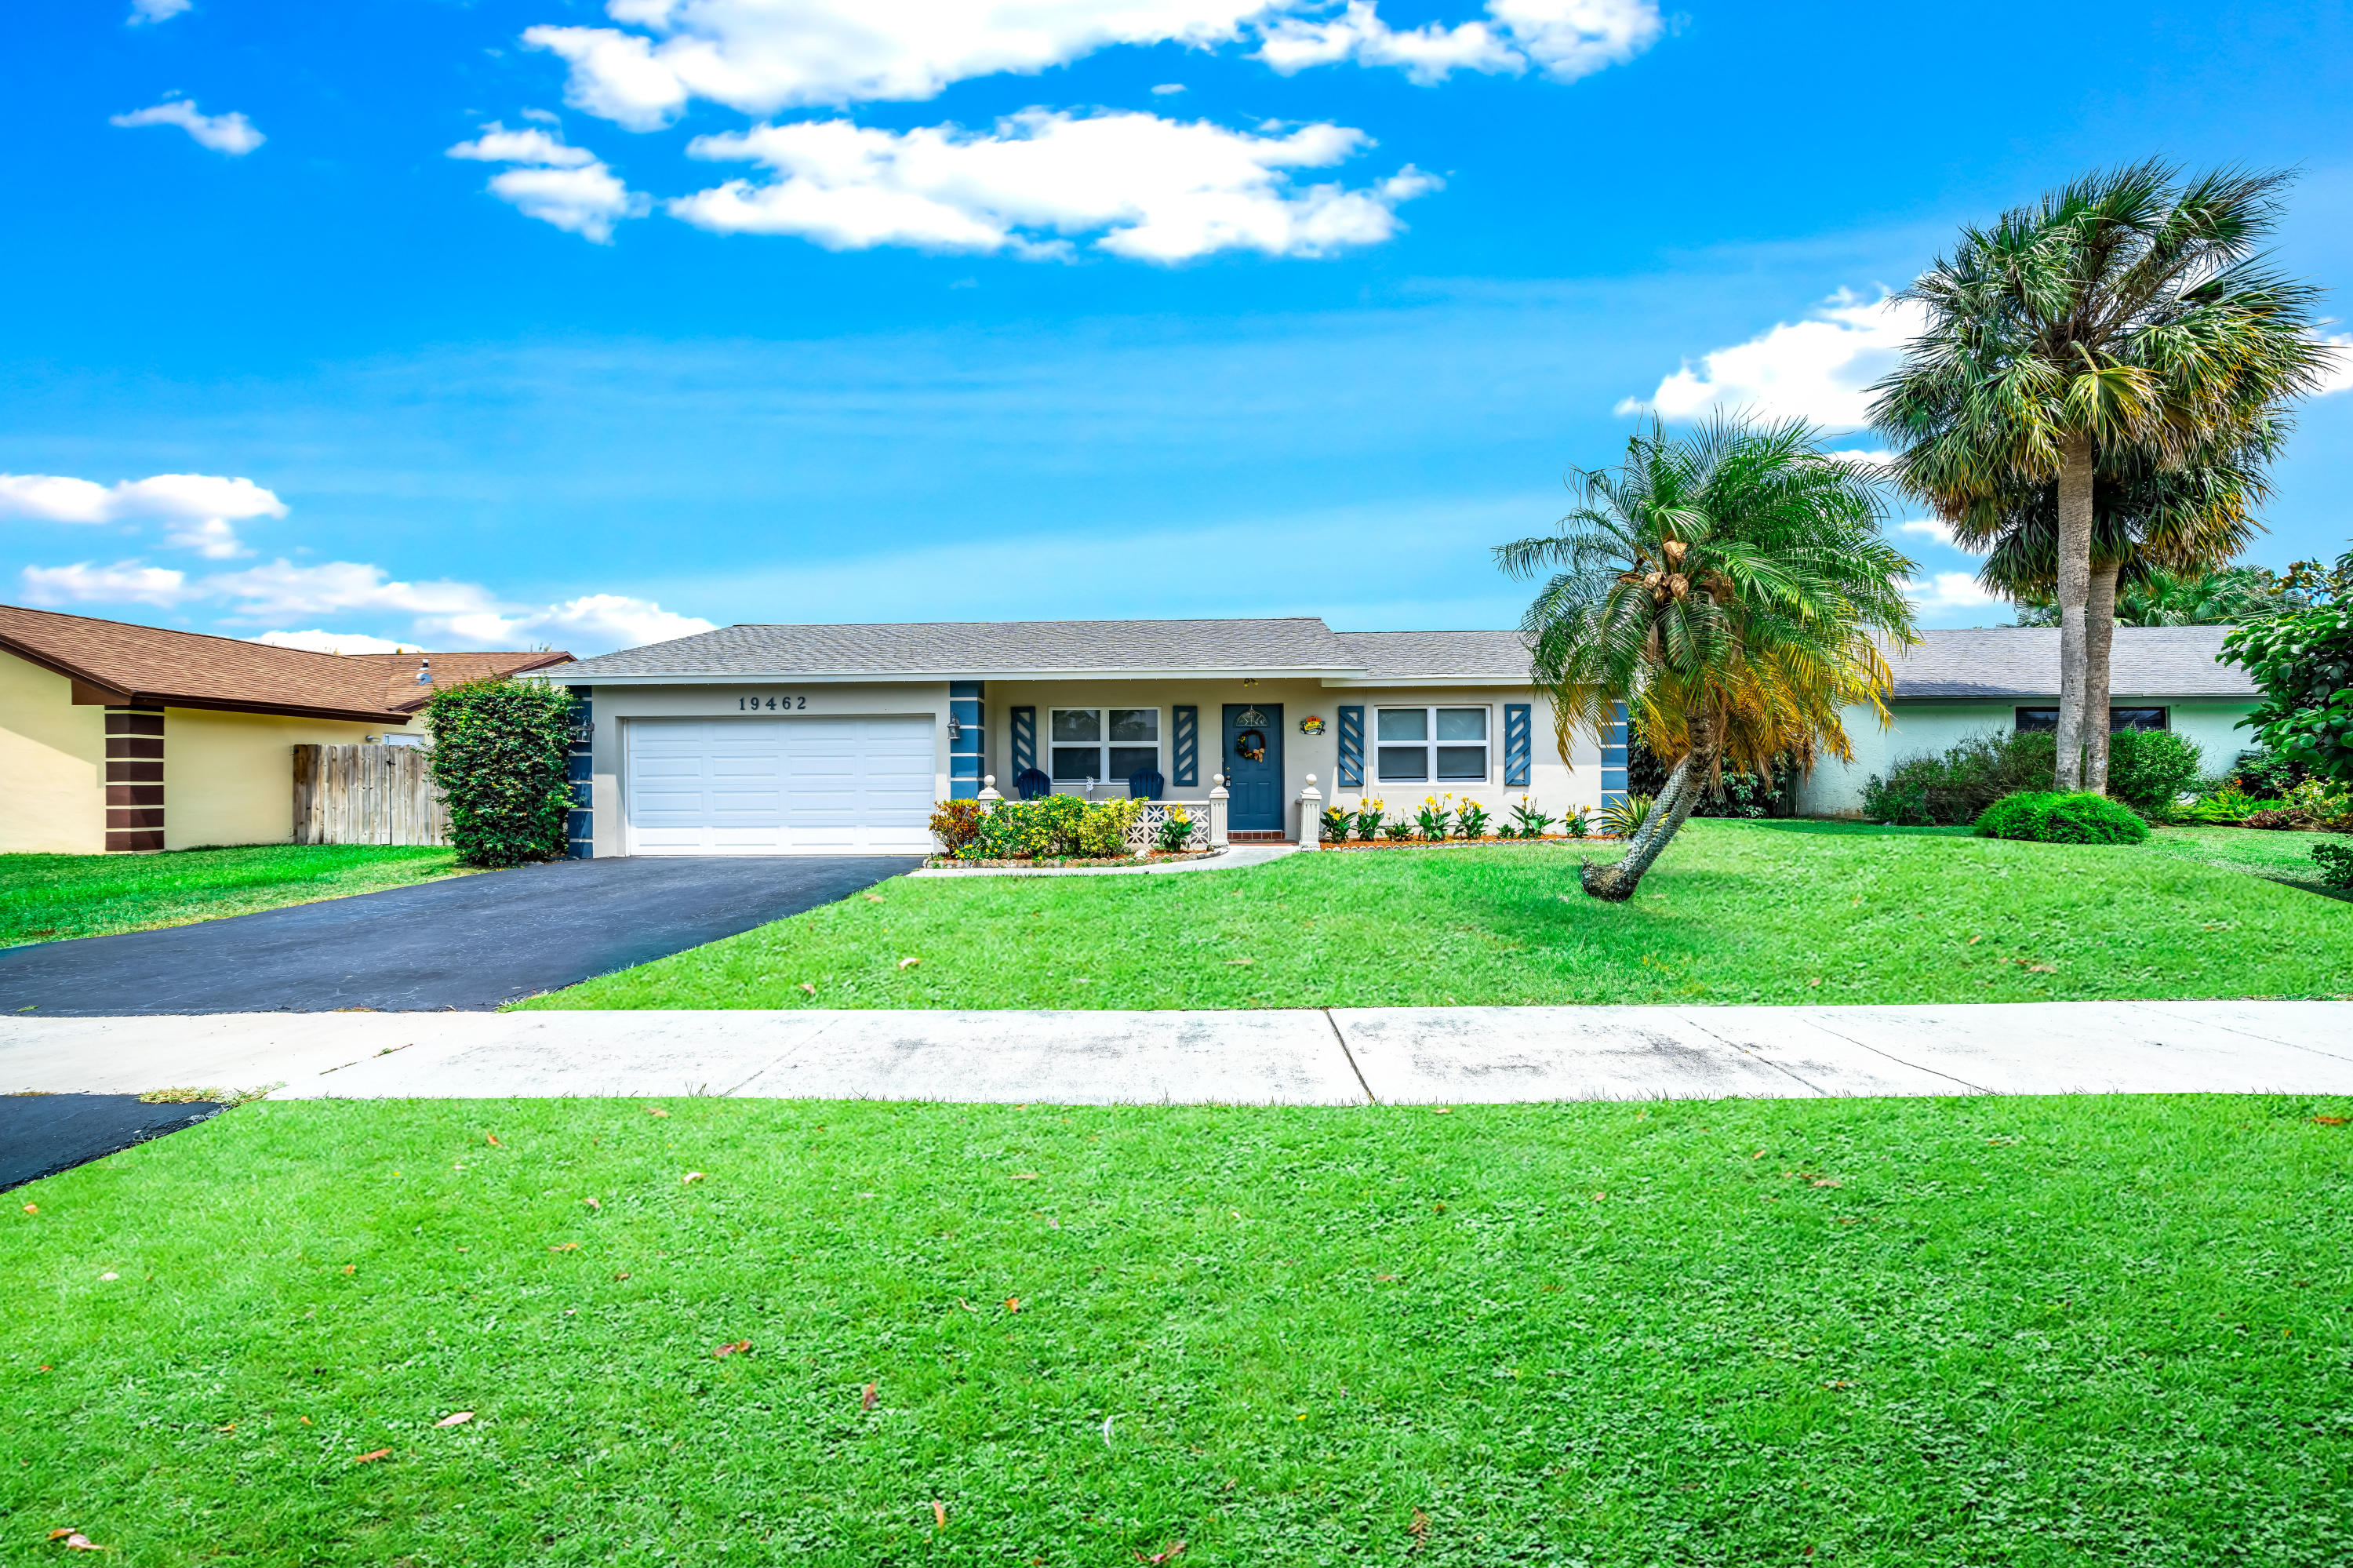 Home for sale in American Homes Boca Raton Florida